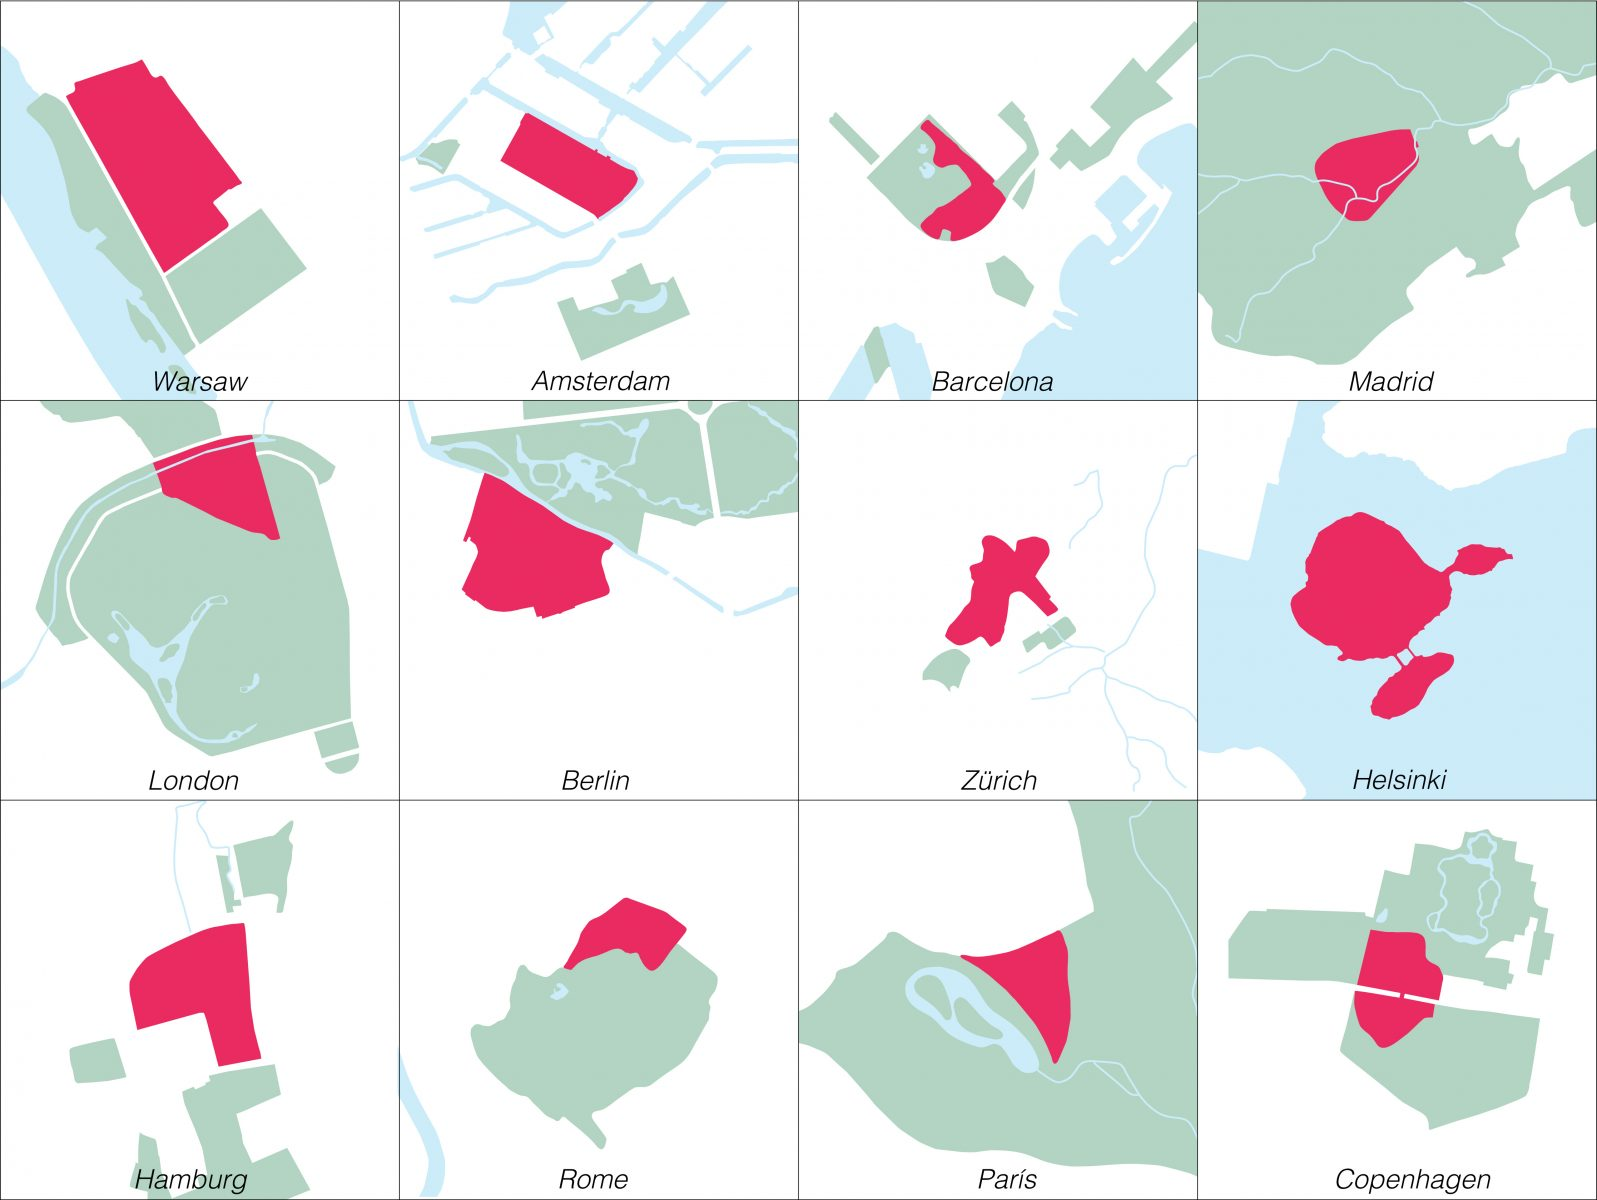 Conception for transforming metropolitan zoos. Comparison on the same scale of the zoo and the surrounding green areas of various cities with the potential to become the Fauna Districts. A network of such places can help preserve biodiversity by reacting to emerging issues during the upcoming great animal migrations.